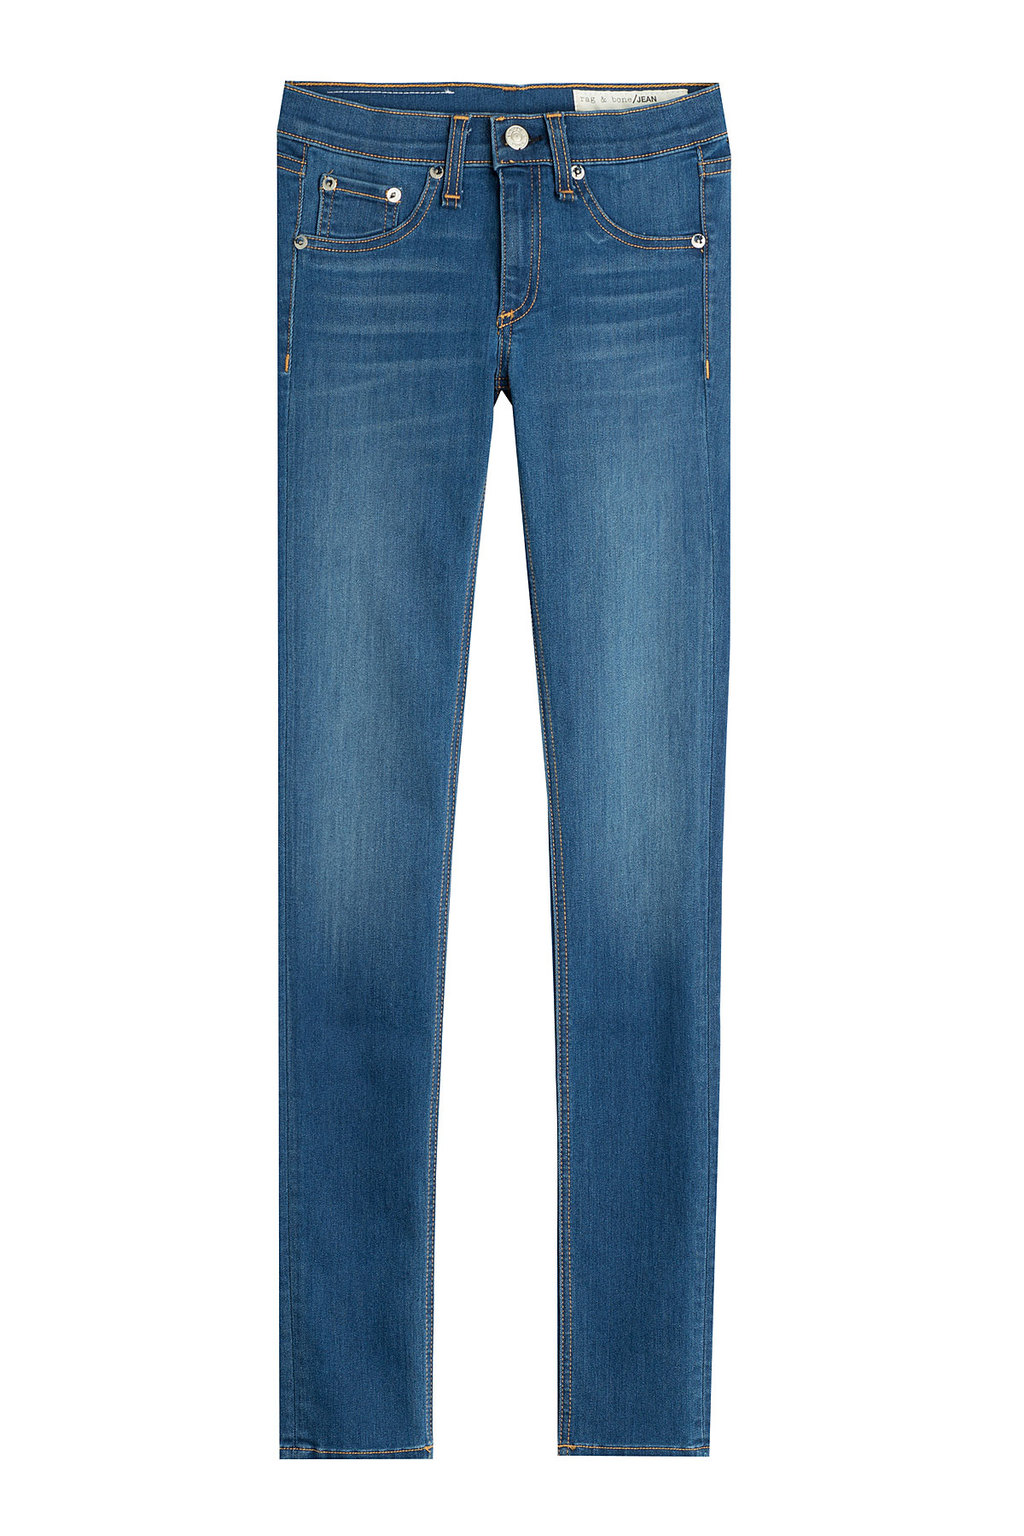 Skinny Jeans - style: skinny leg; length: standard; pattern: plain; waist: low rise; pocket detail: traditional 5 pocket; predominant colour: denim; occasions: casual; fibres: cotton - stretch; jeans detail: shading down centre of thigh; texture group: denim; pattern type: fabric; season: a/w 2015; wardrobe: basic